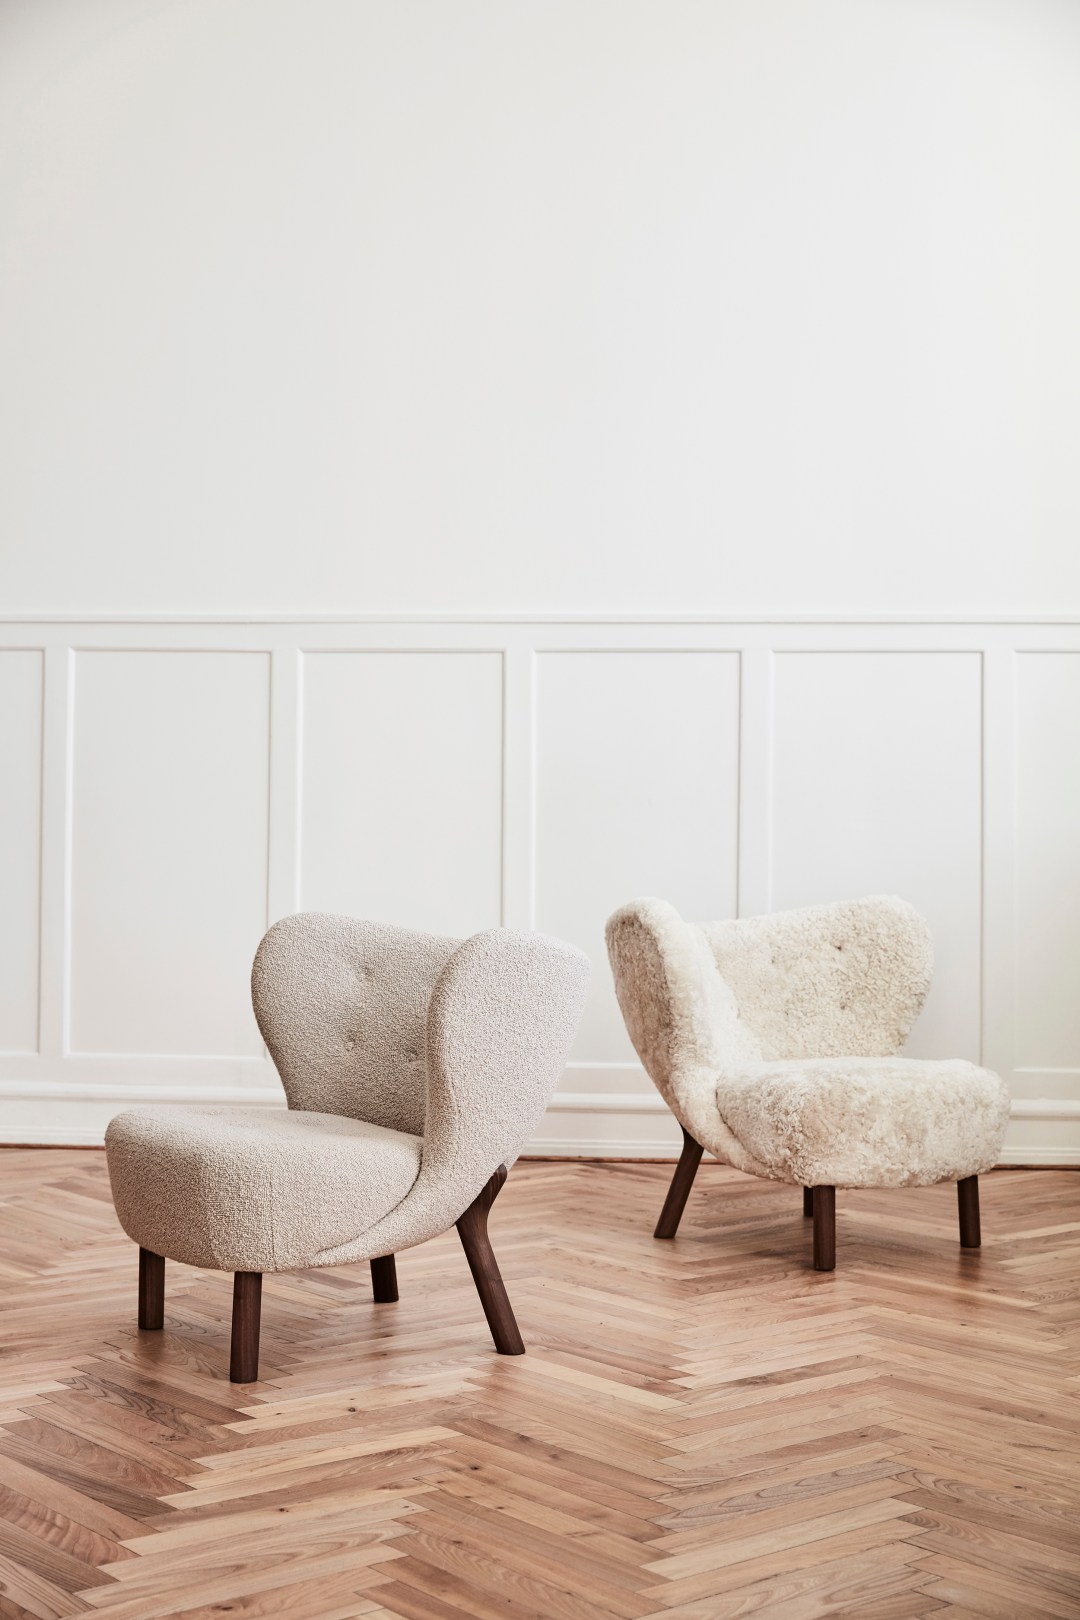 Design classics relaunched - Little Petra by Viggo Boesen 1938